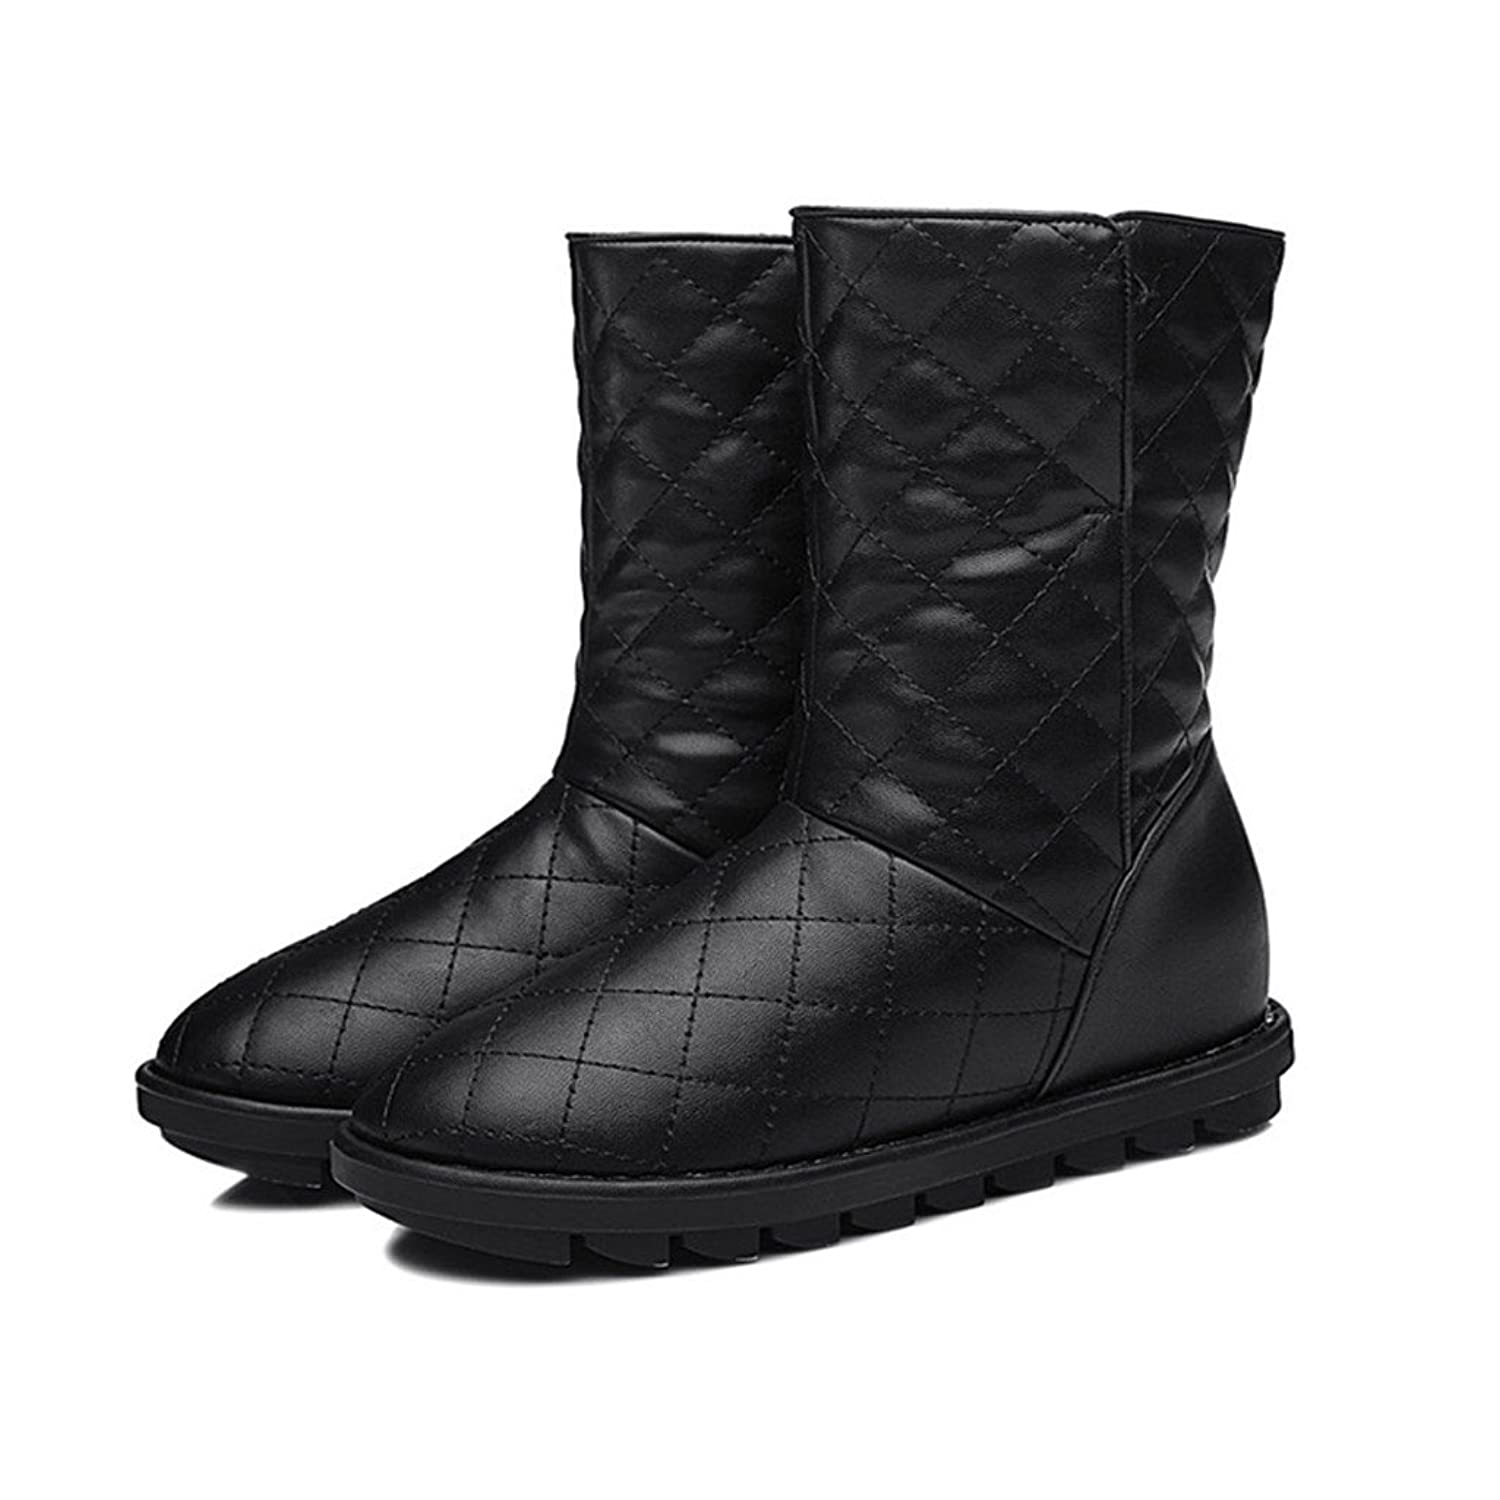 Fashionback Women's Casual Solid Simple Snow Boots